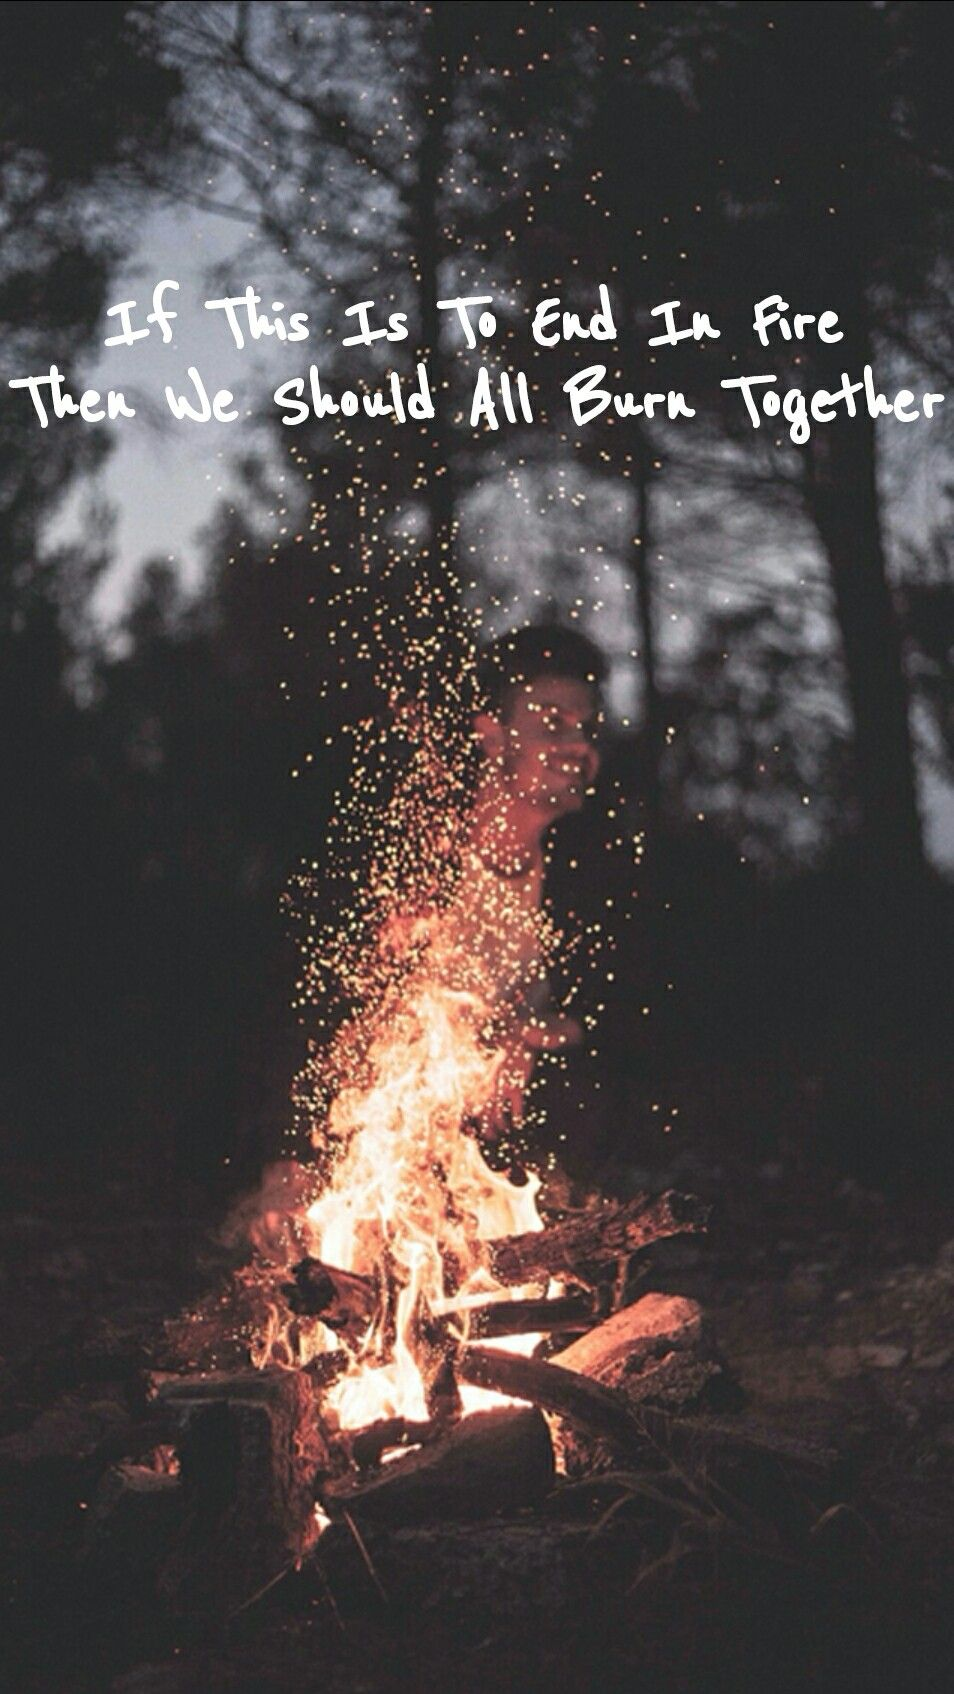 I See Fire Ed Sheeran Lyrics Lockscreen